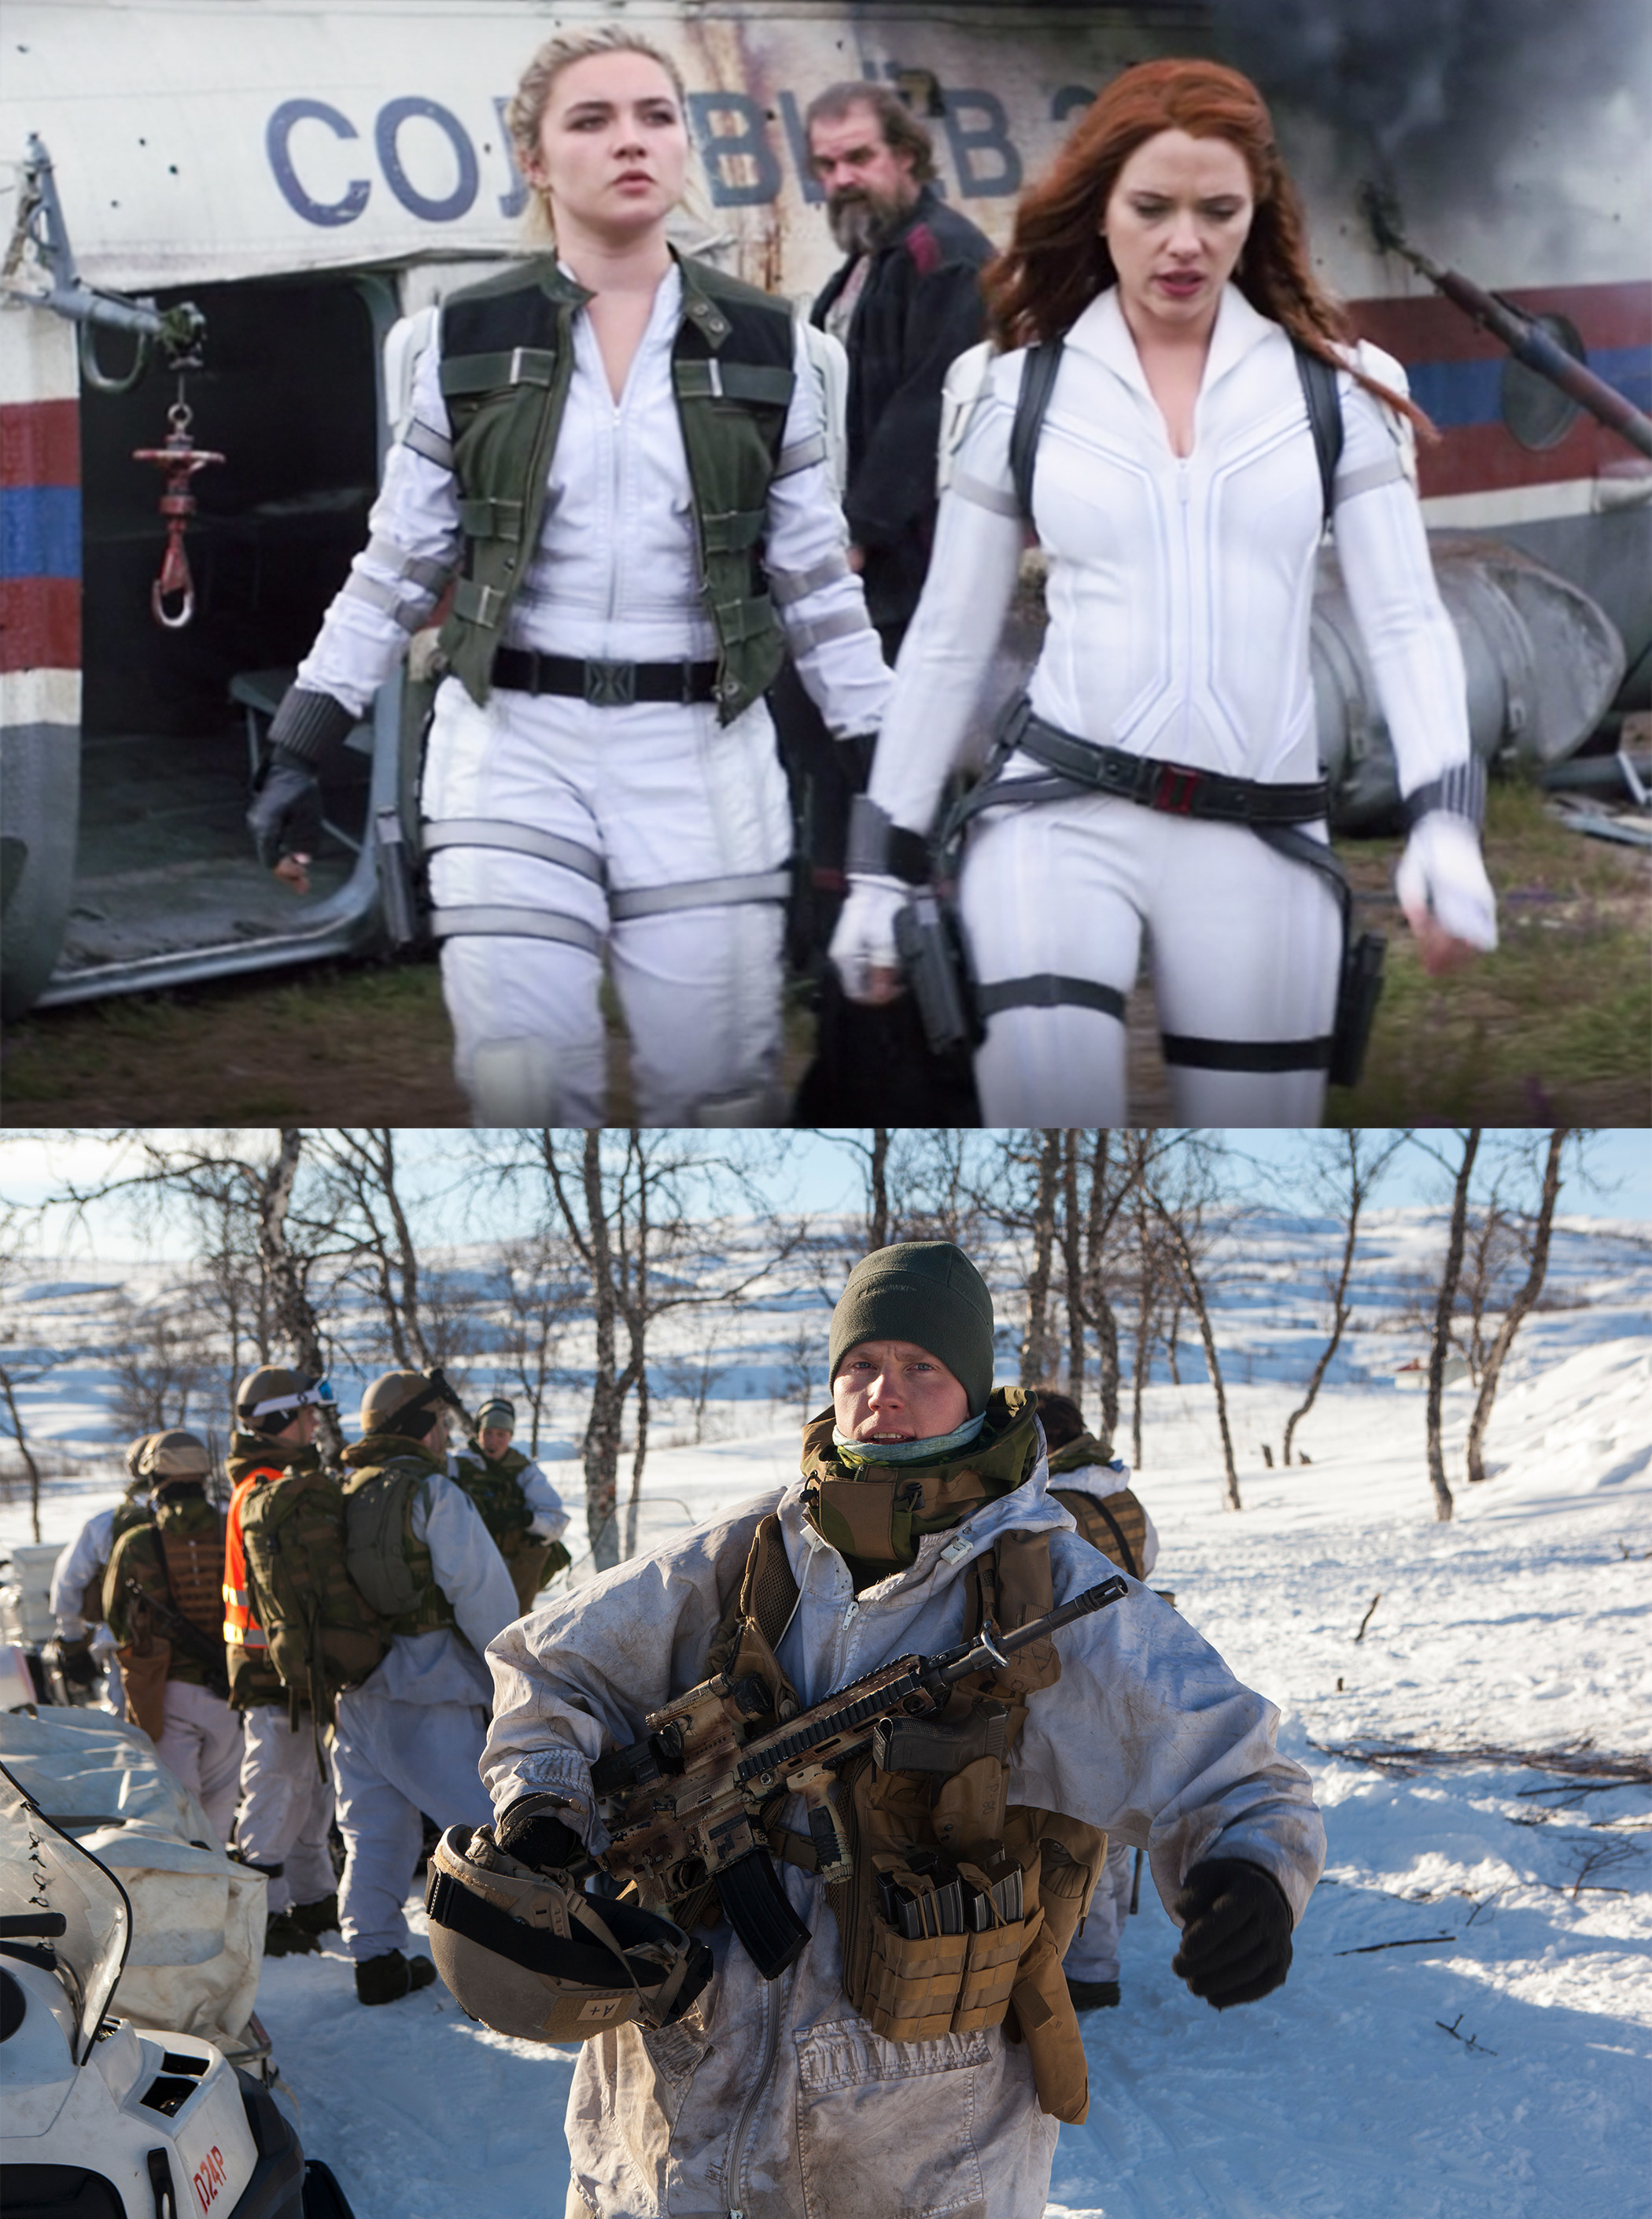 the women's suits are snowy like the ones the Norwegian soldiers are wearing to train in the Arctic Circle